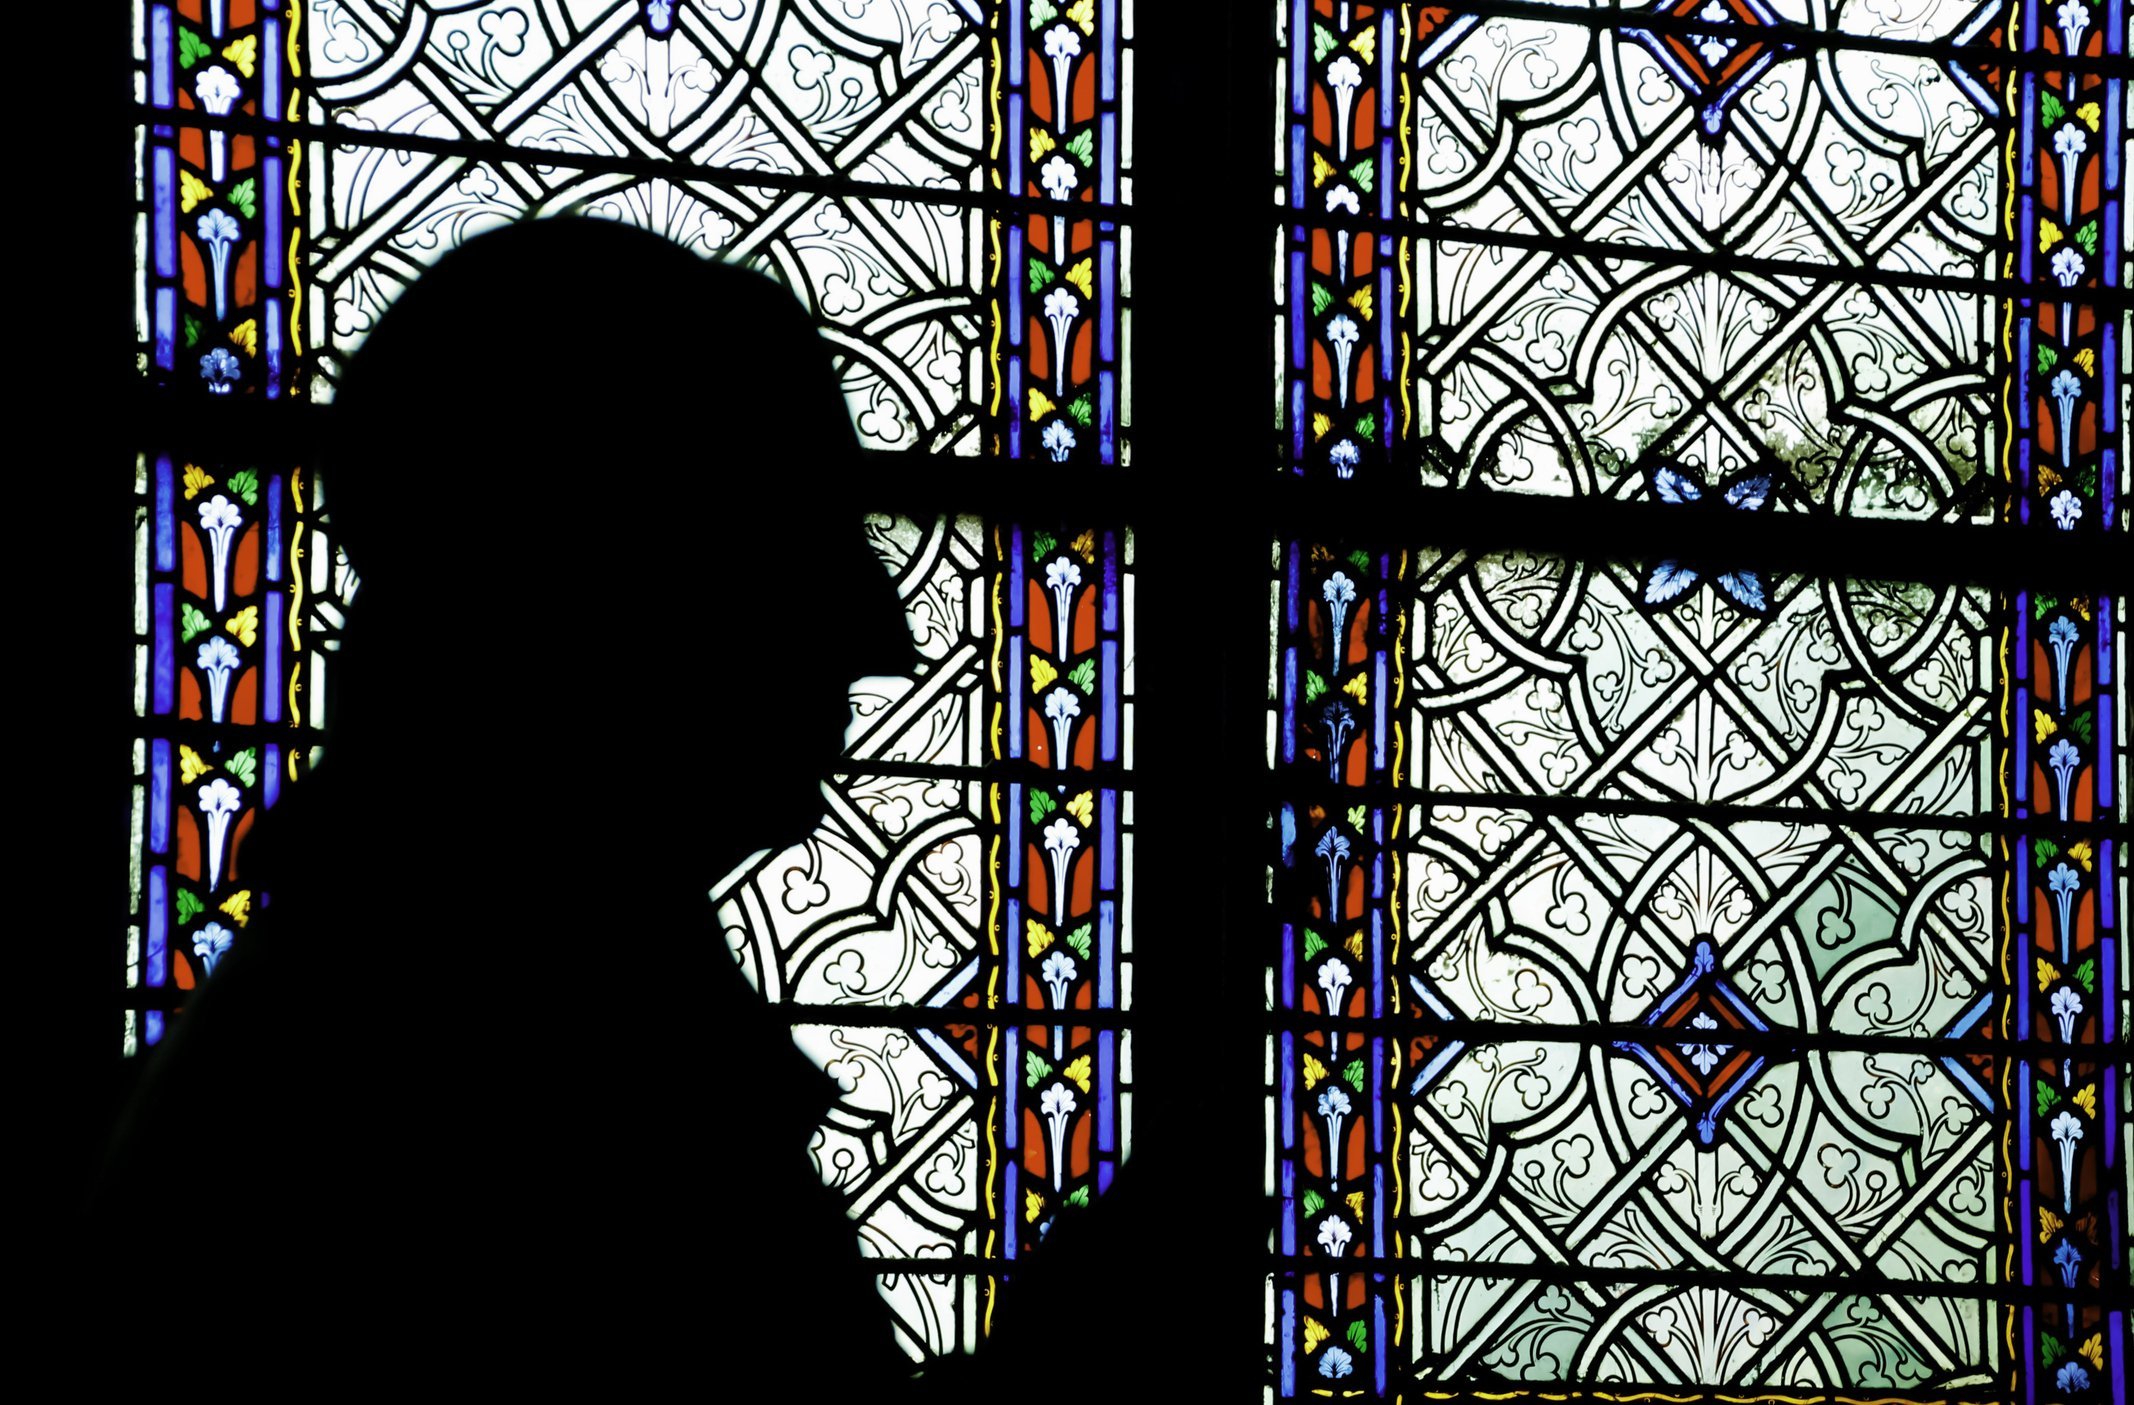 Man praying in front of stained glass window in church | Photo: Getty Images